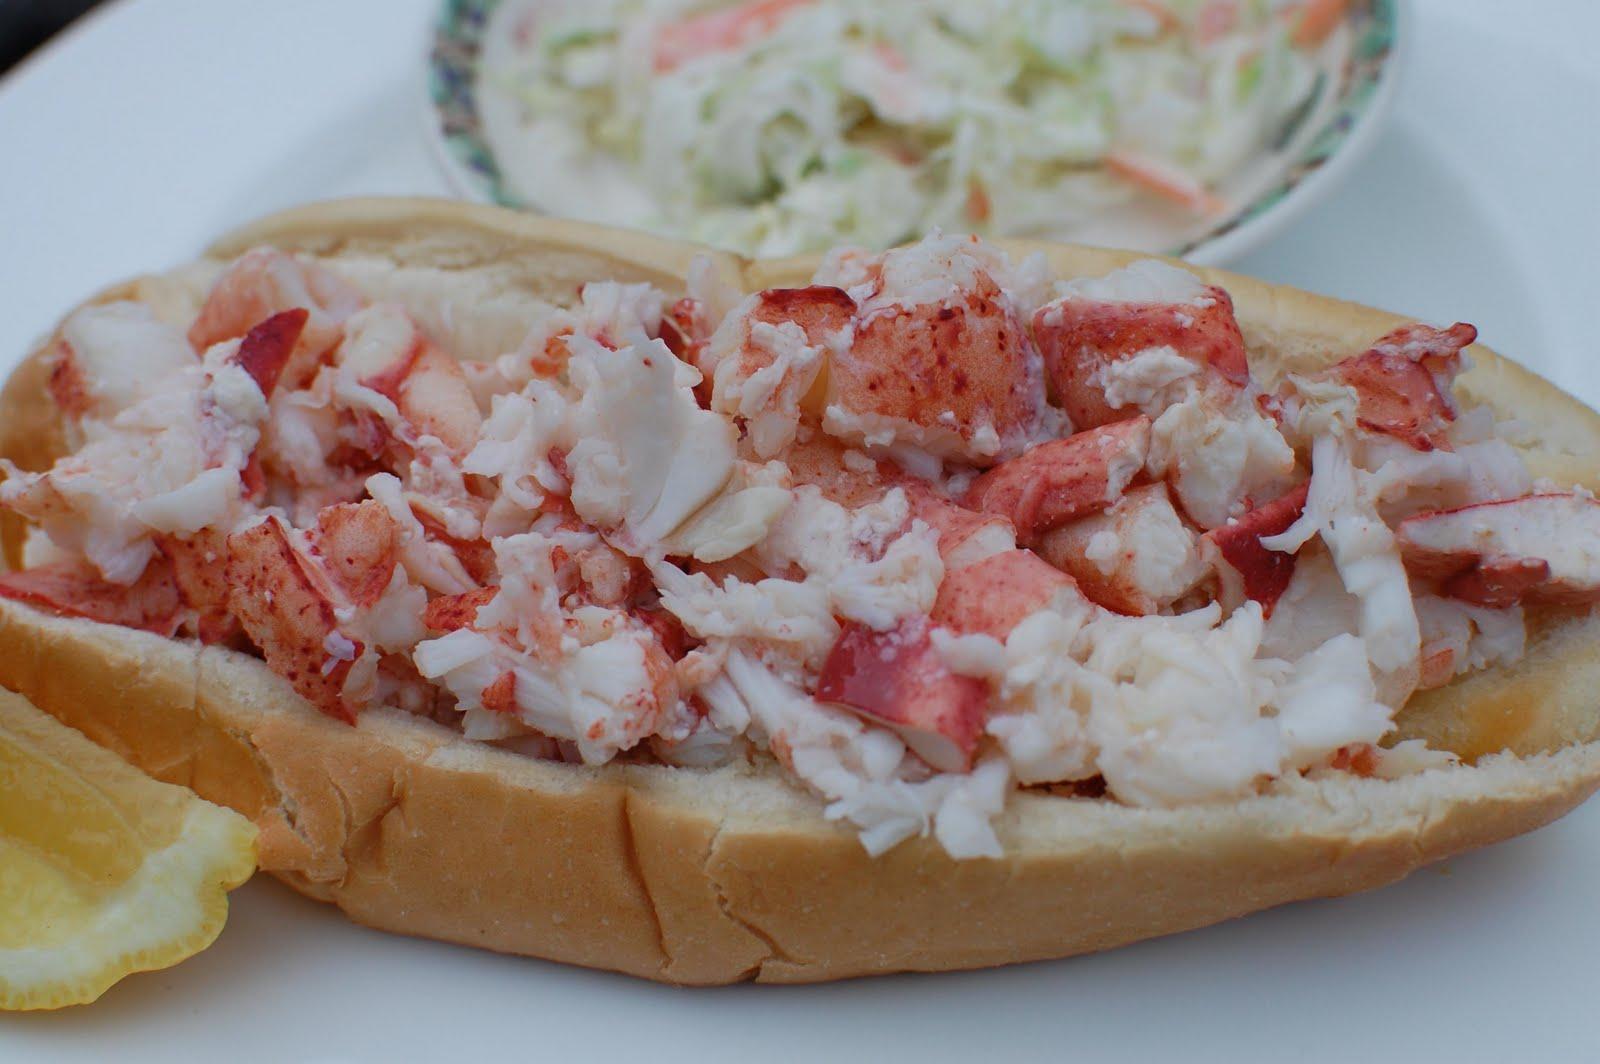 NJ Epicurean: Warm Lobster Roll